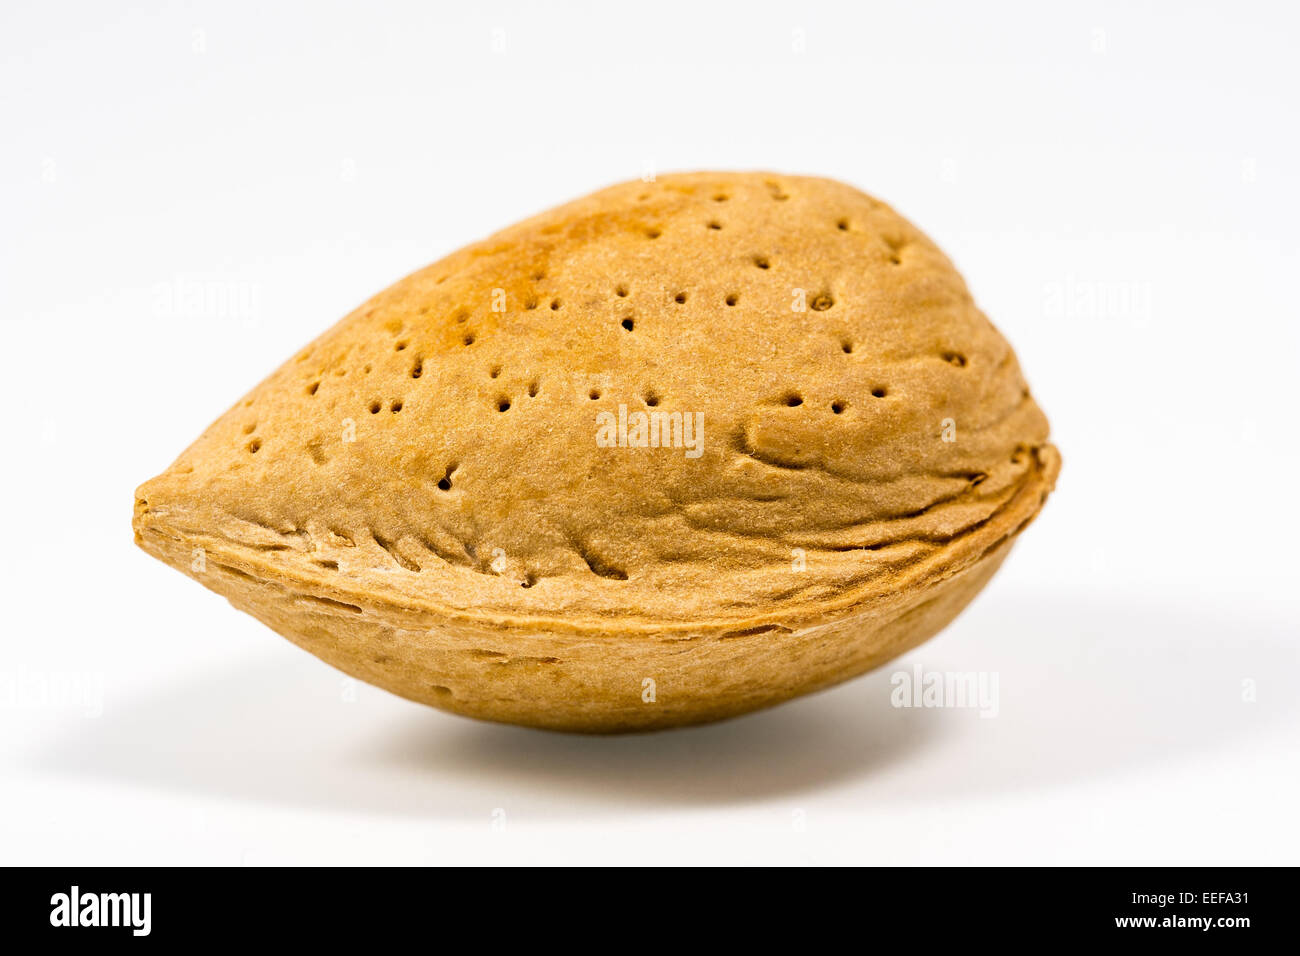 An almond with white background - Stock Image